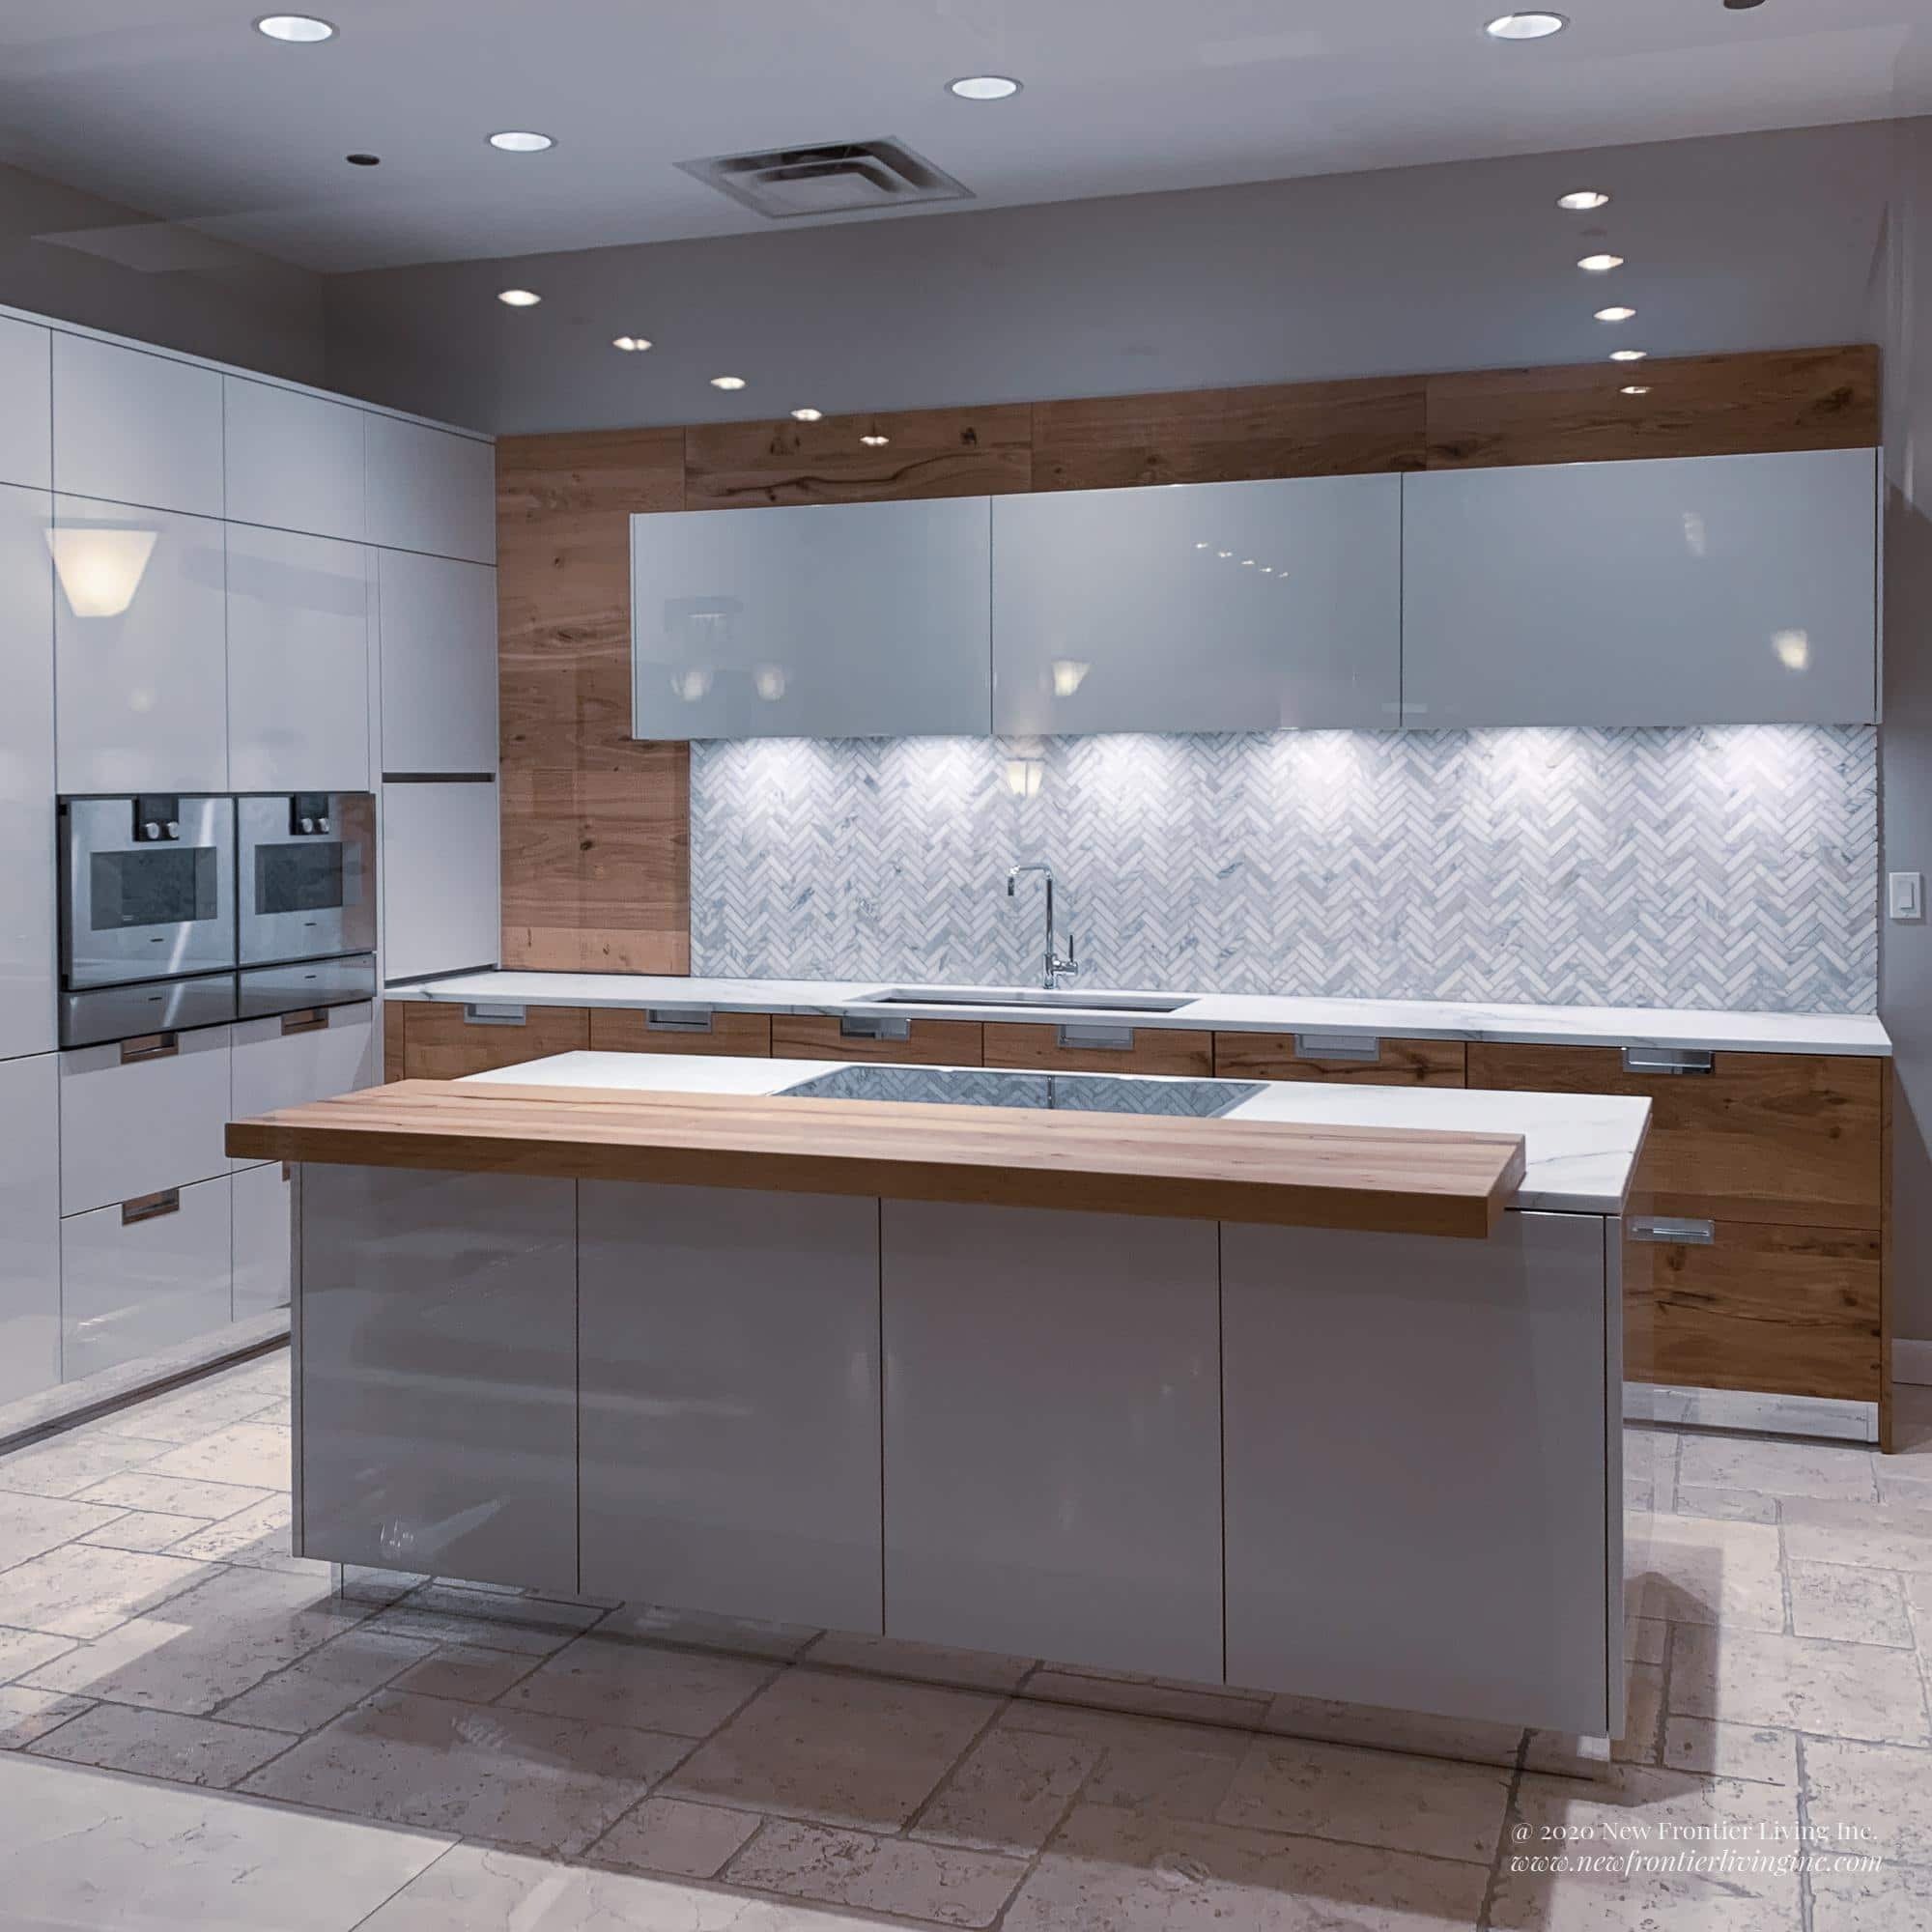 White and wood Snaidero kitchen with an island and white/wood paneling